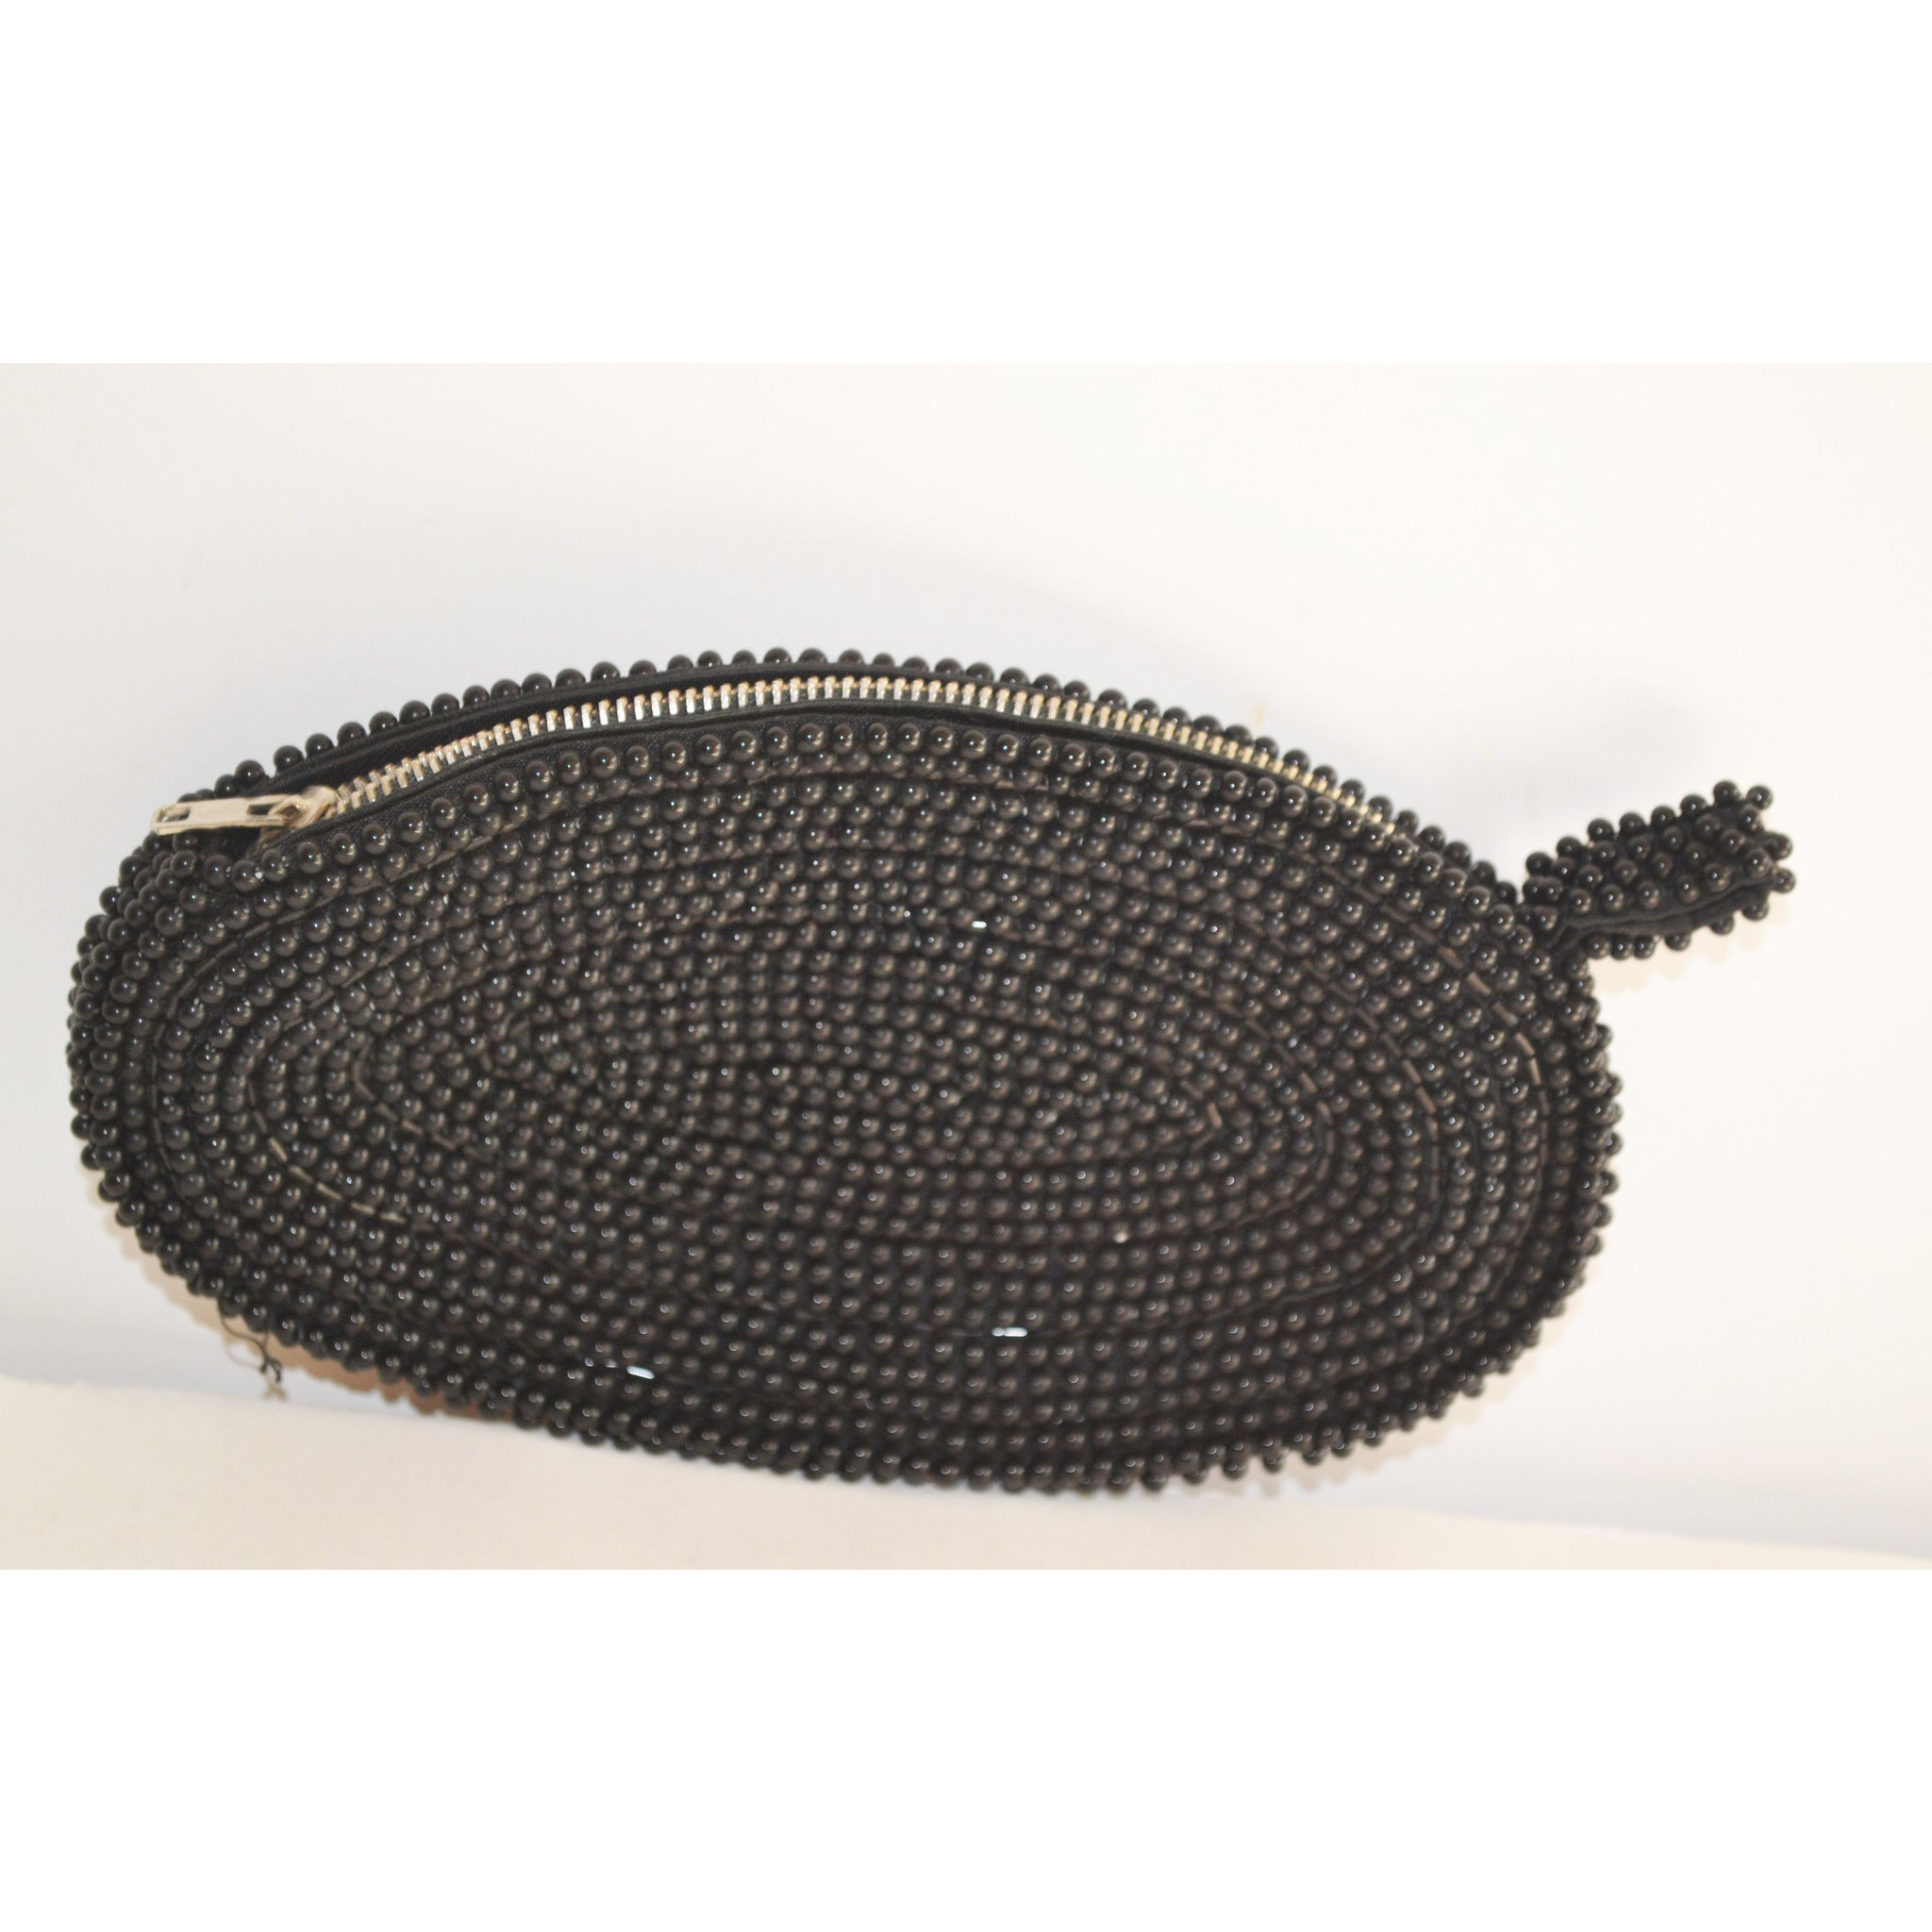 Vintage Black Beaded Coin Purse By David's Import